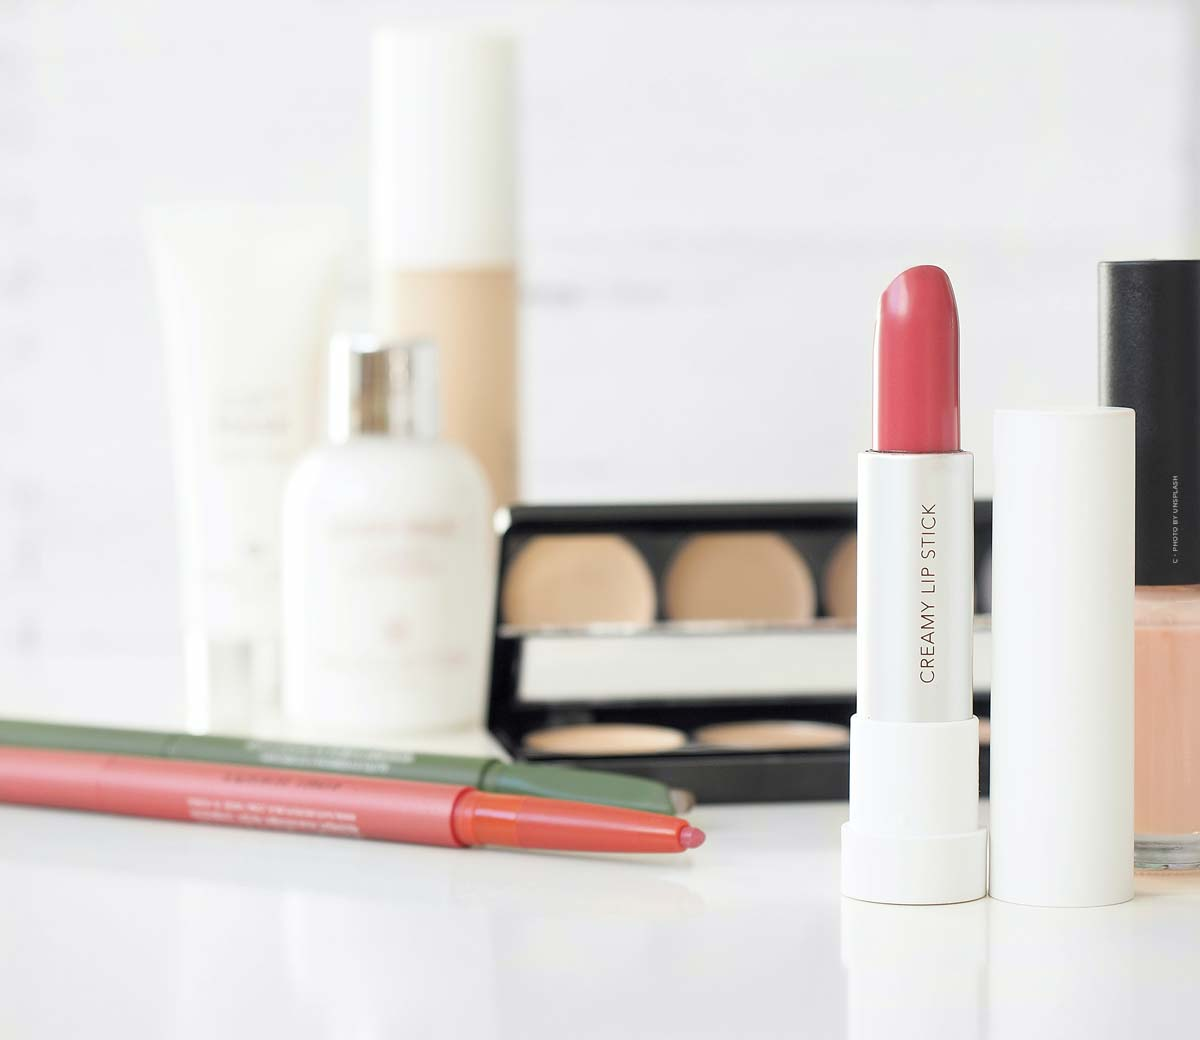 Tom Ford Beauty: Parfüm und Make Up des Designers